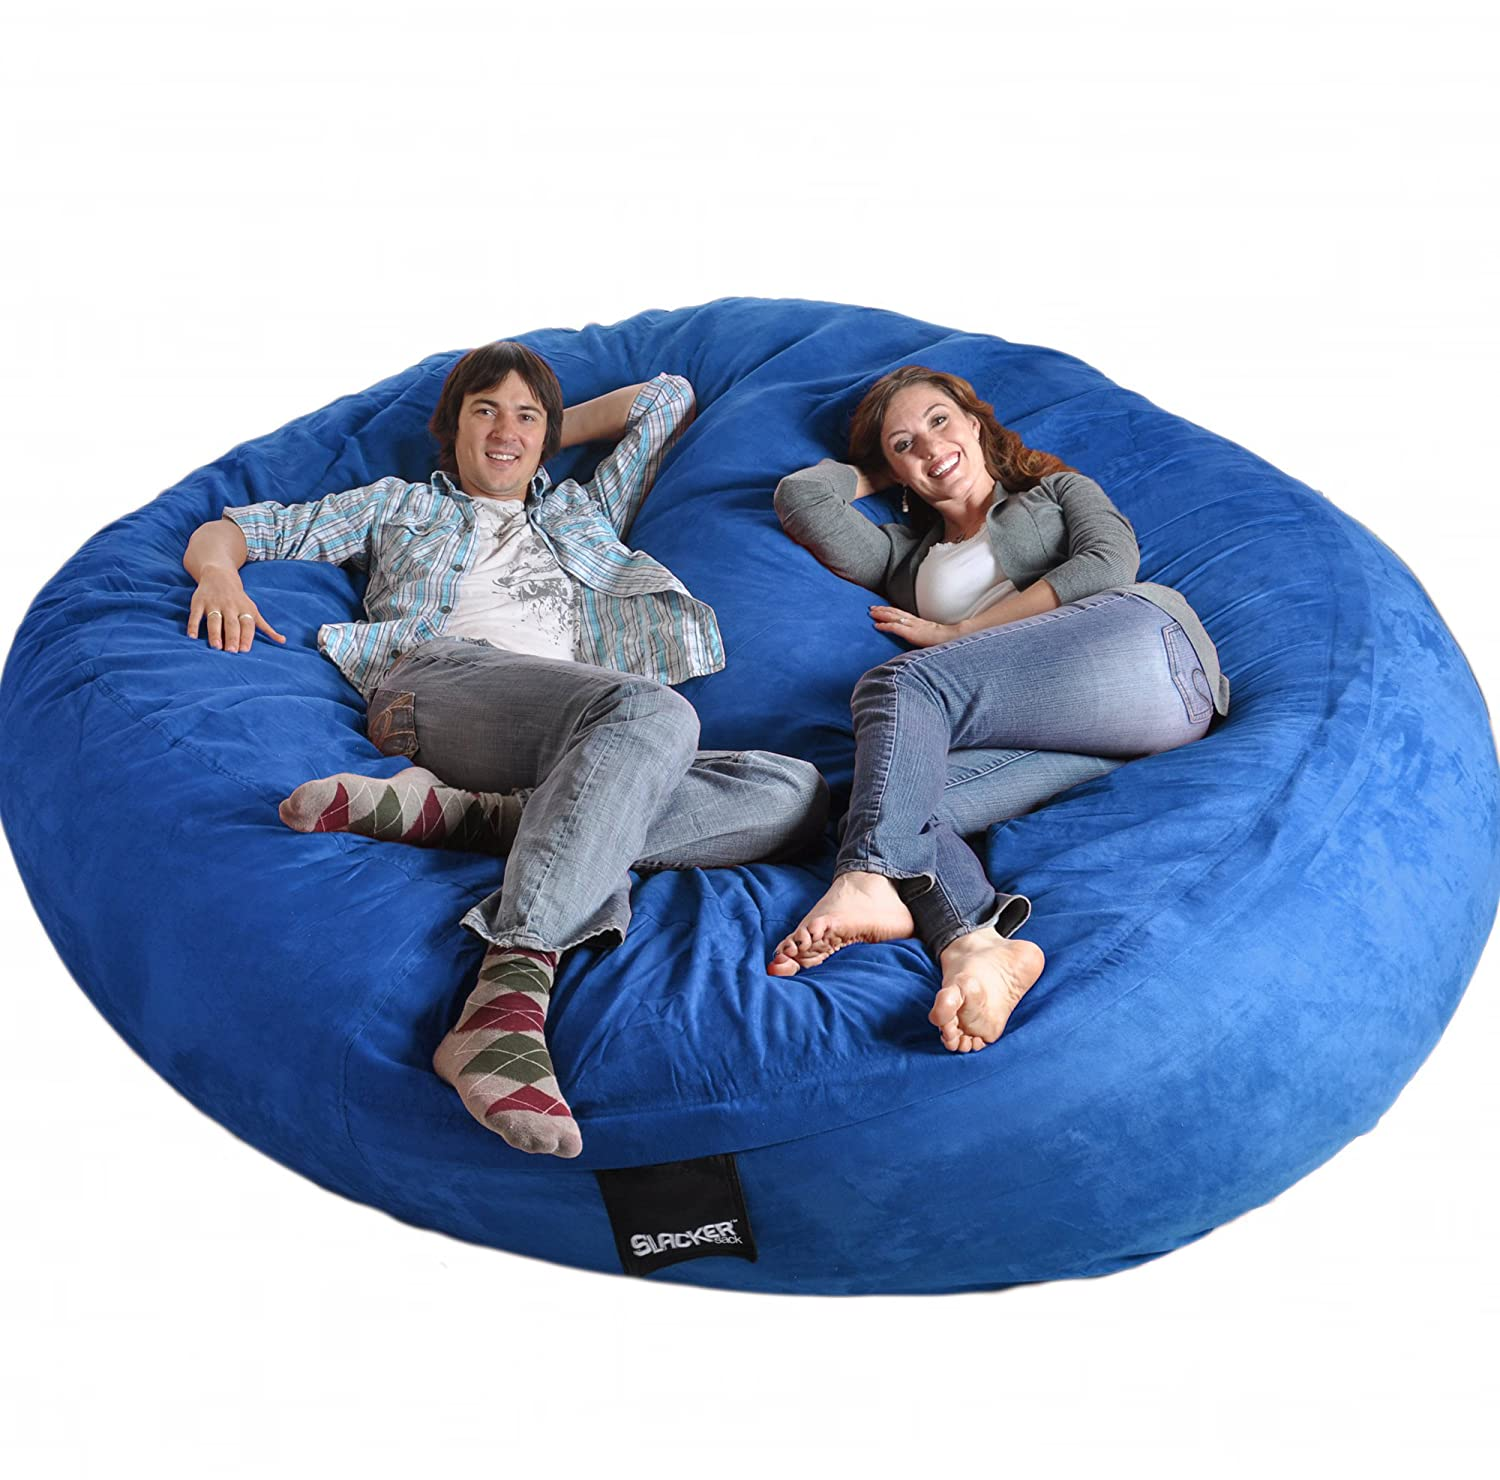 100 bean bag sofsac triangular bean bag chair extra large l